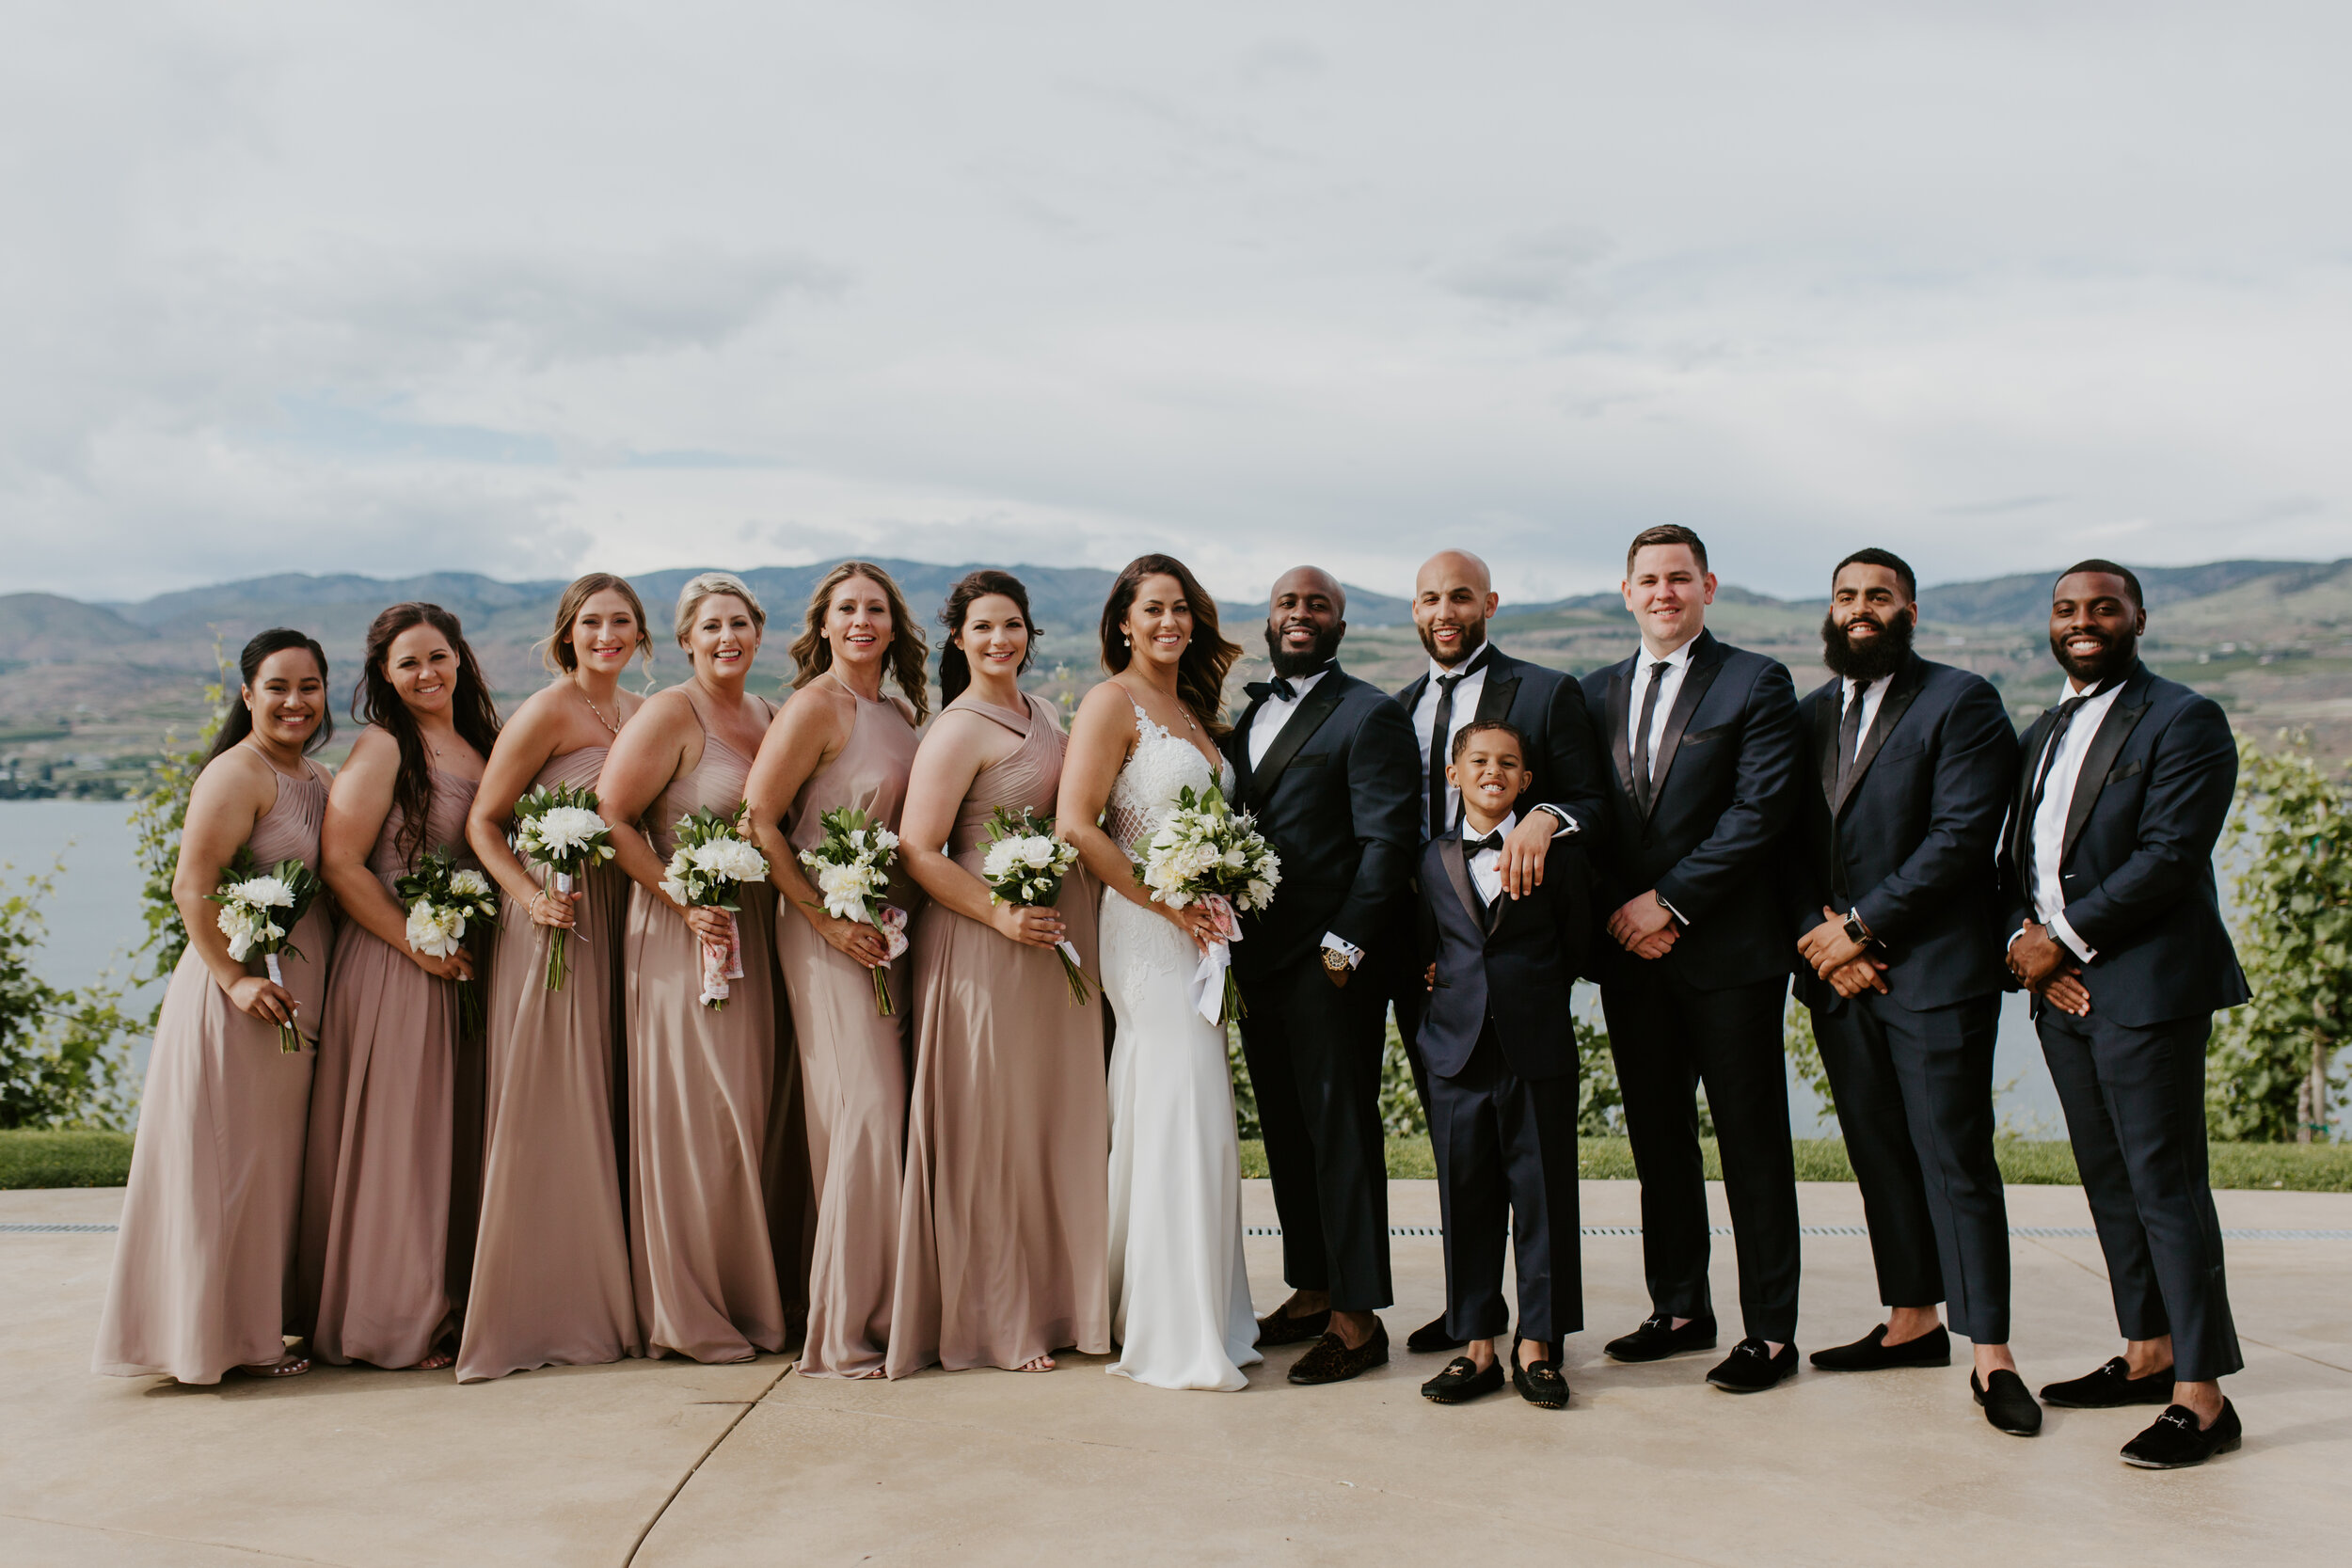 The Patton Wedding - Danielle and QueVonshe - Karma Vineyards - Chelan, Washington - June 7th - Meme Urbane Photography_-12.jpg